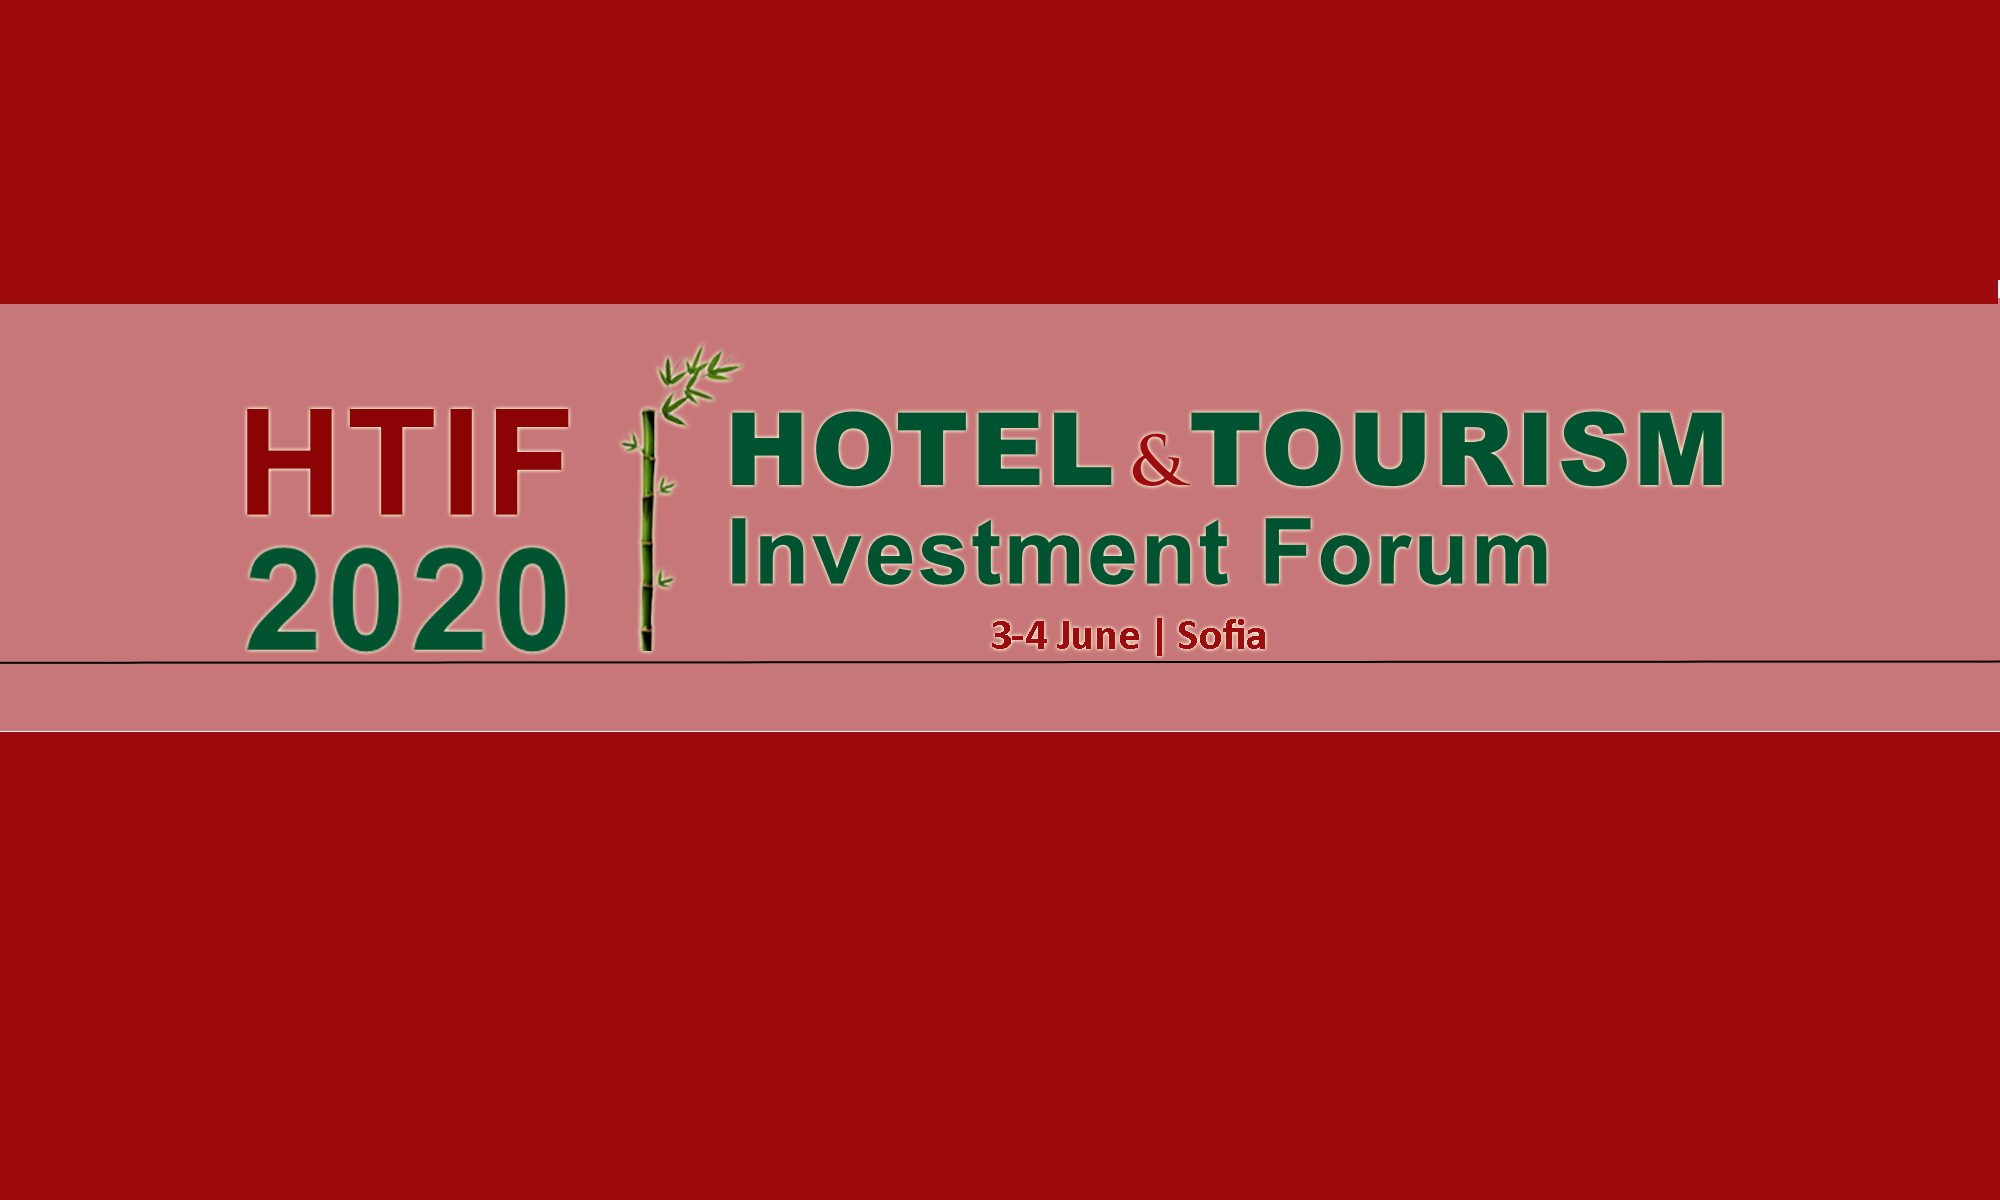 Hotel & Tourism Investment Forum